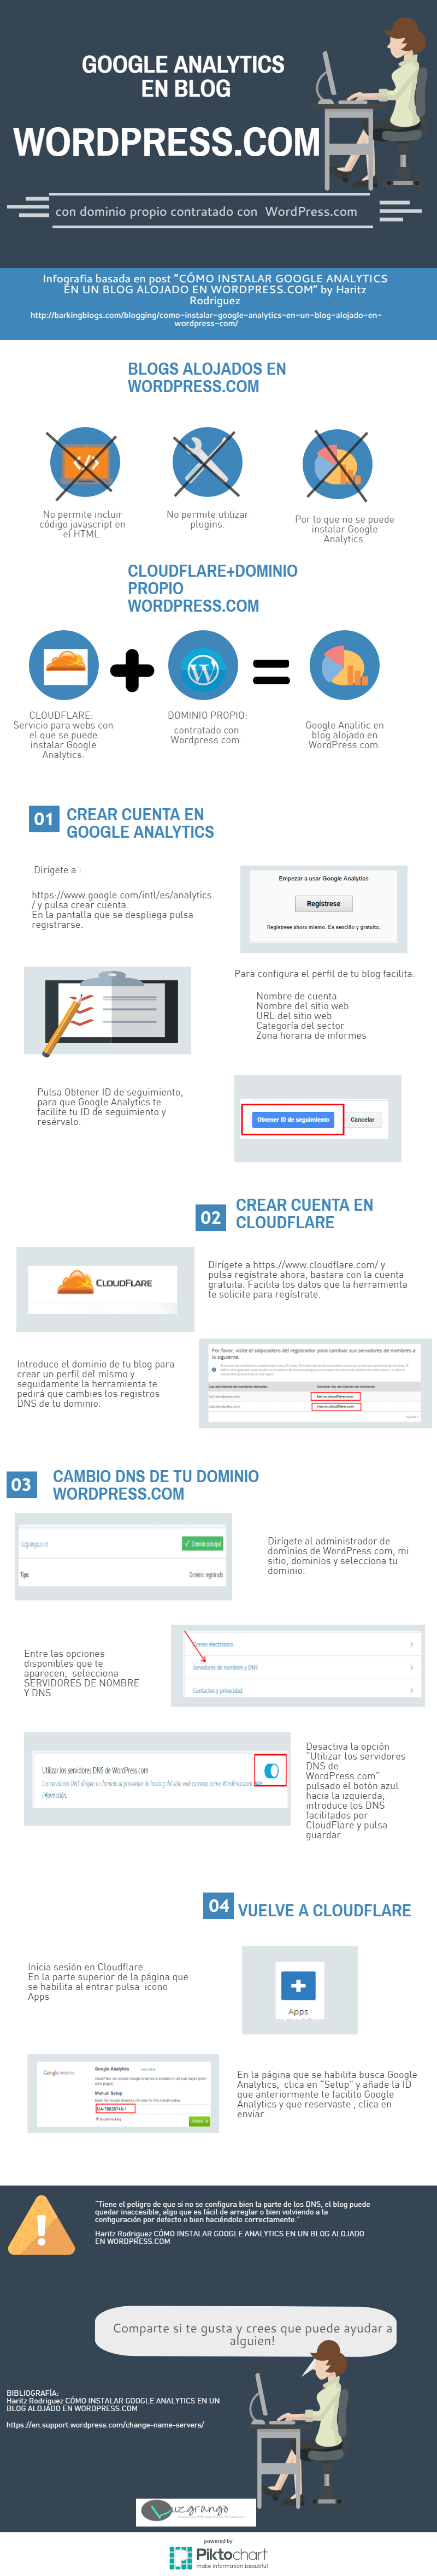 Cómo usar Google Analytics en WordPress.com